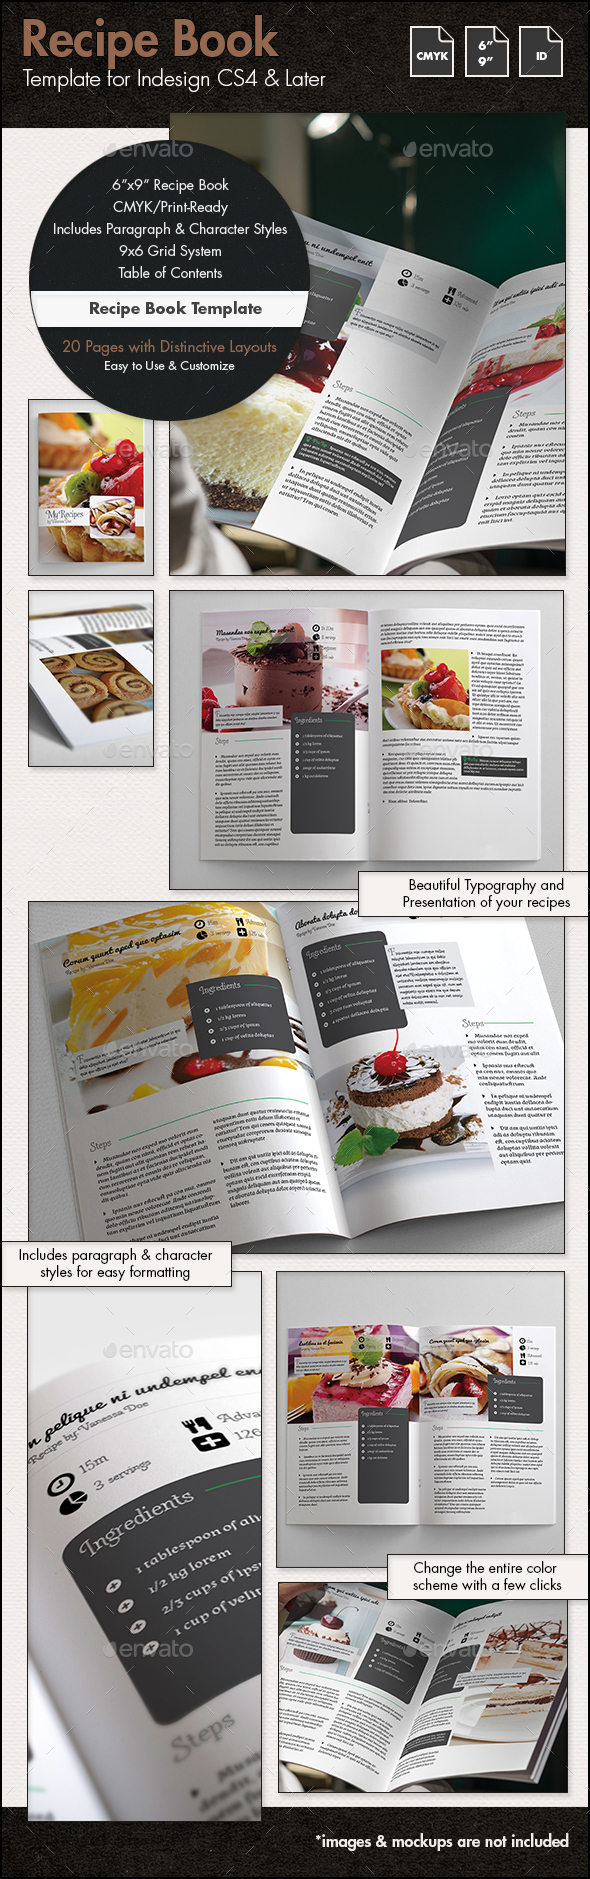 recipe book templates